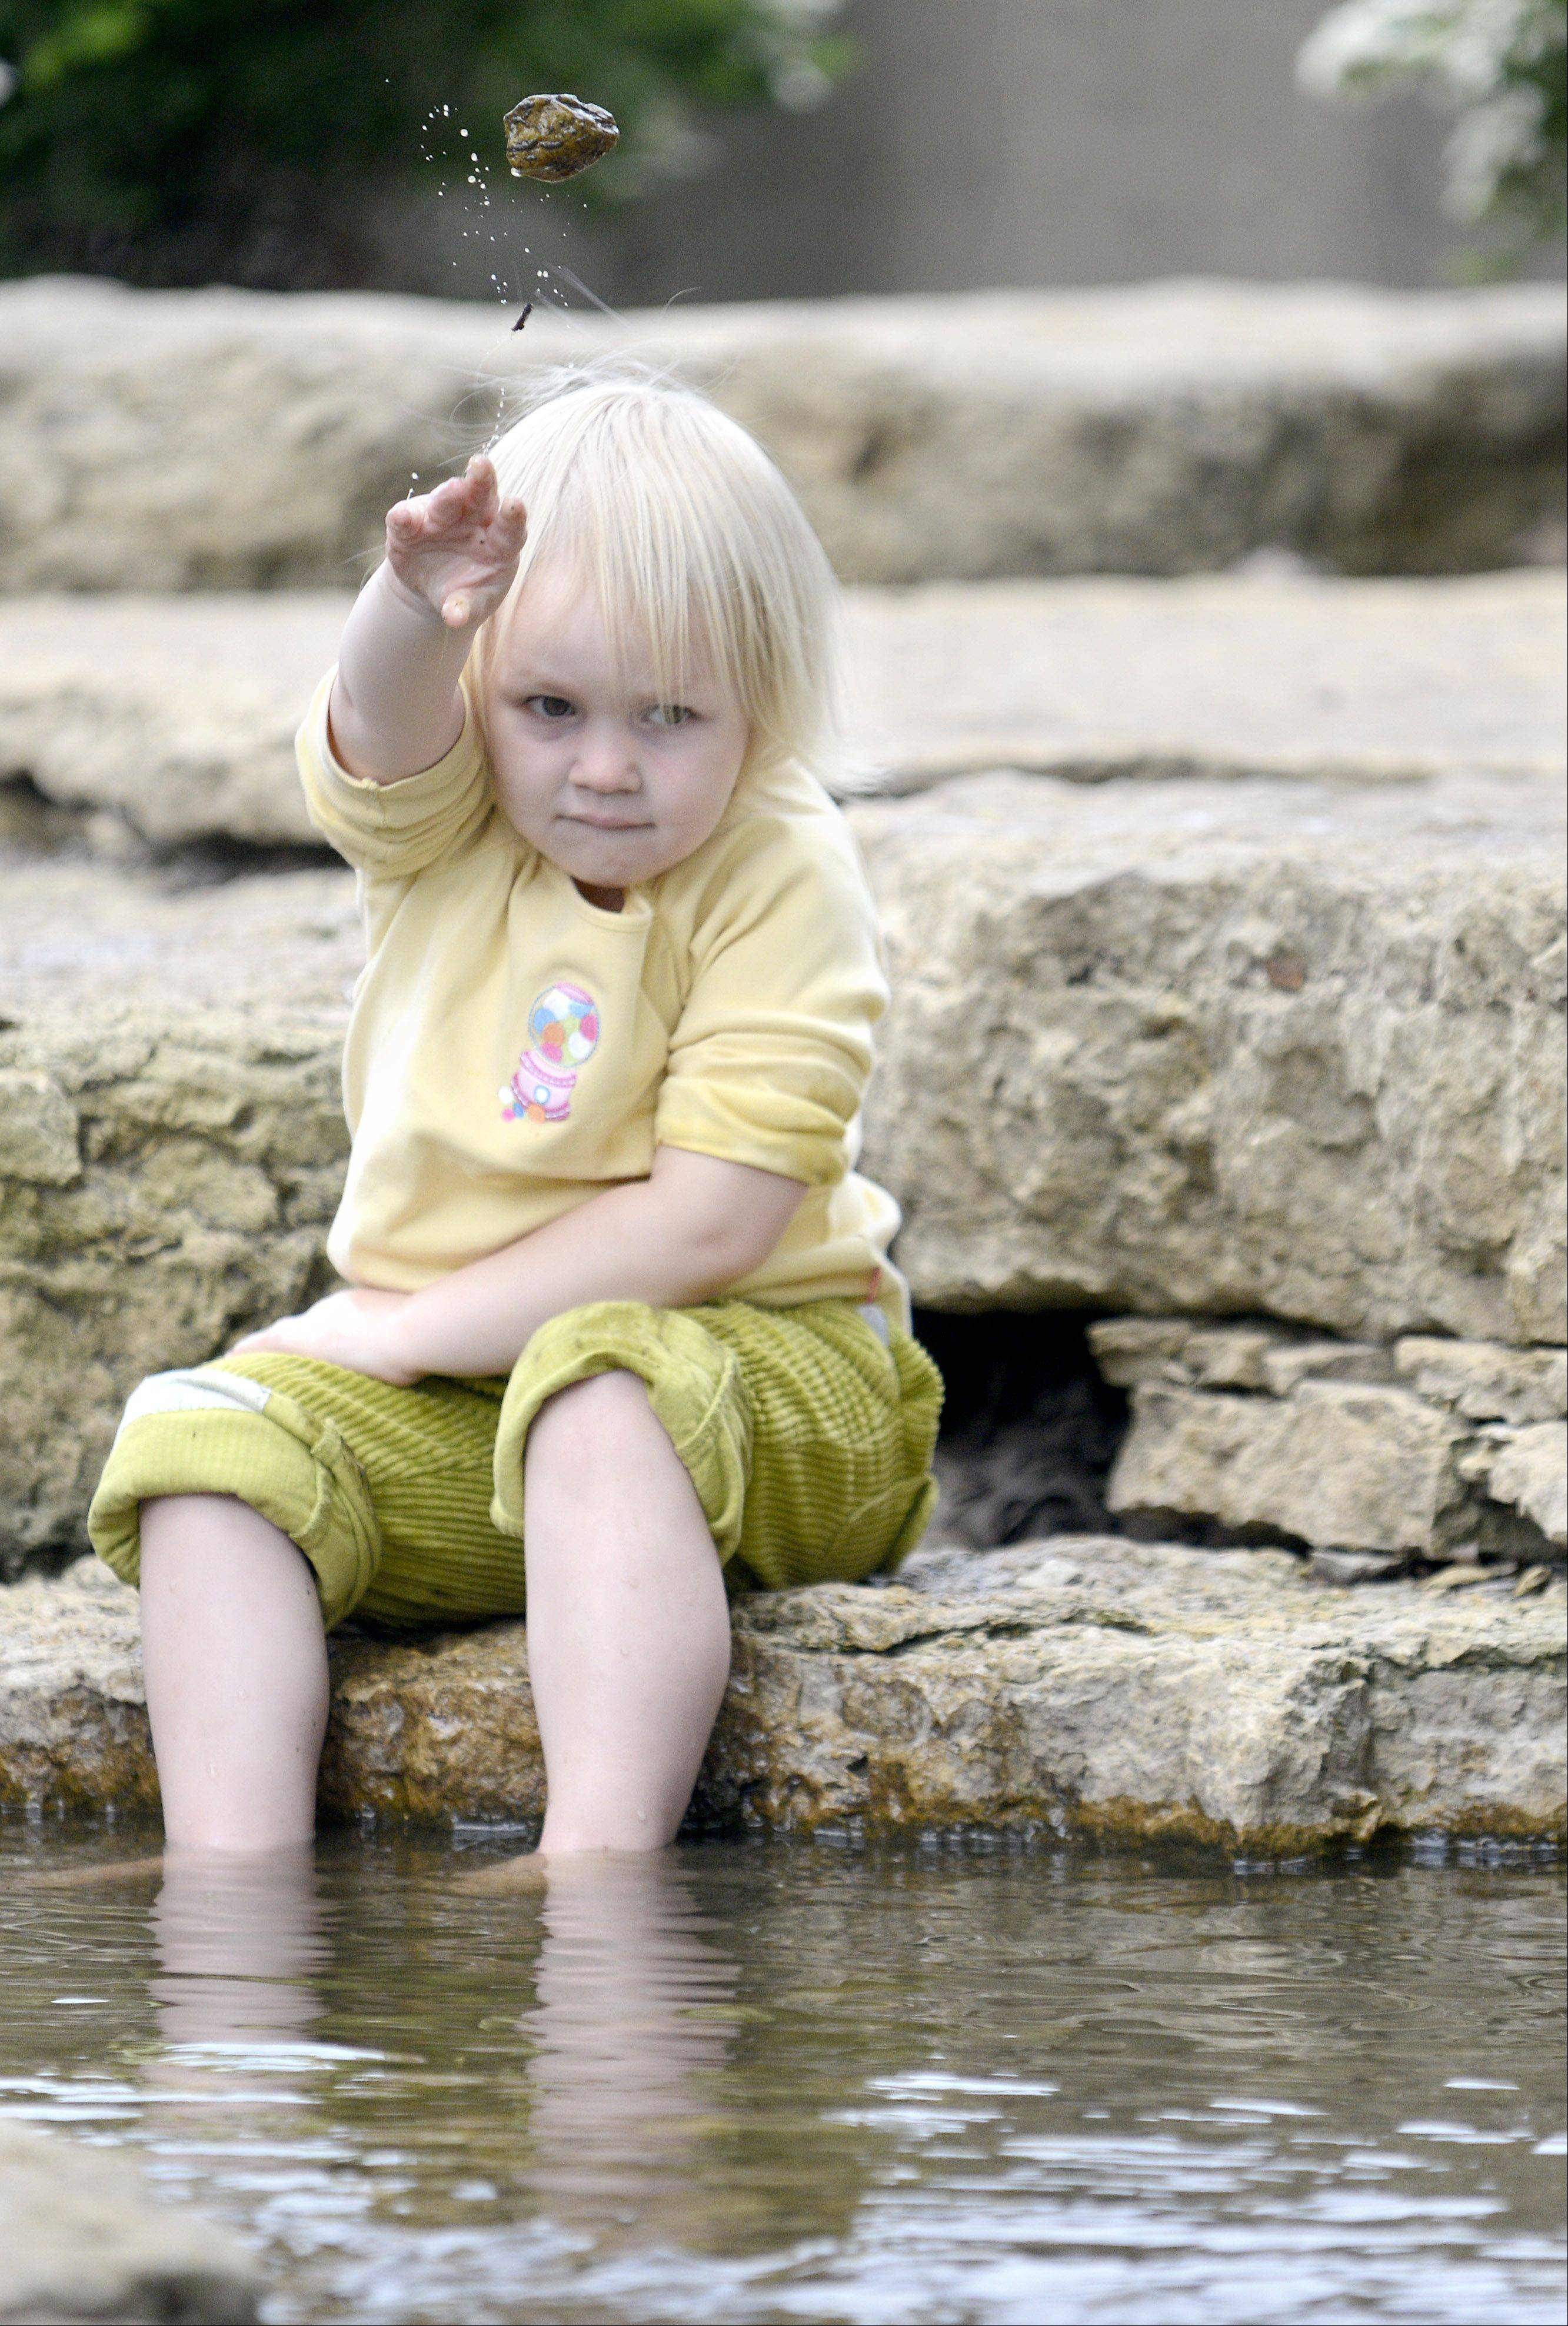 "While dipping her toes in the cool water, Eliza Bruhl, 2, of Elburn tosses rocks in a stream by the Riverwalk at Pottwatomie Park in St. Charles Tuesday. Eliza, along with her sister, Lillian, 6, brothers Acelin, 9, Aidan, 7, and friend, Eloise Cole, 8, all of Elburn, spent the day ""park hopping"" in St. Charles with Eloise's mom, Kim. ""[It was] Just too nice of a day to spend inside,"" said Kim Cole."